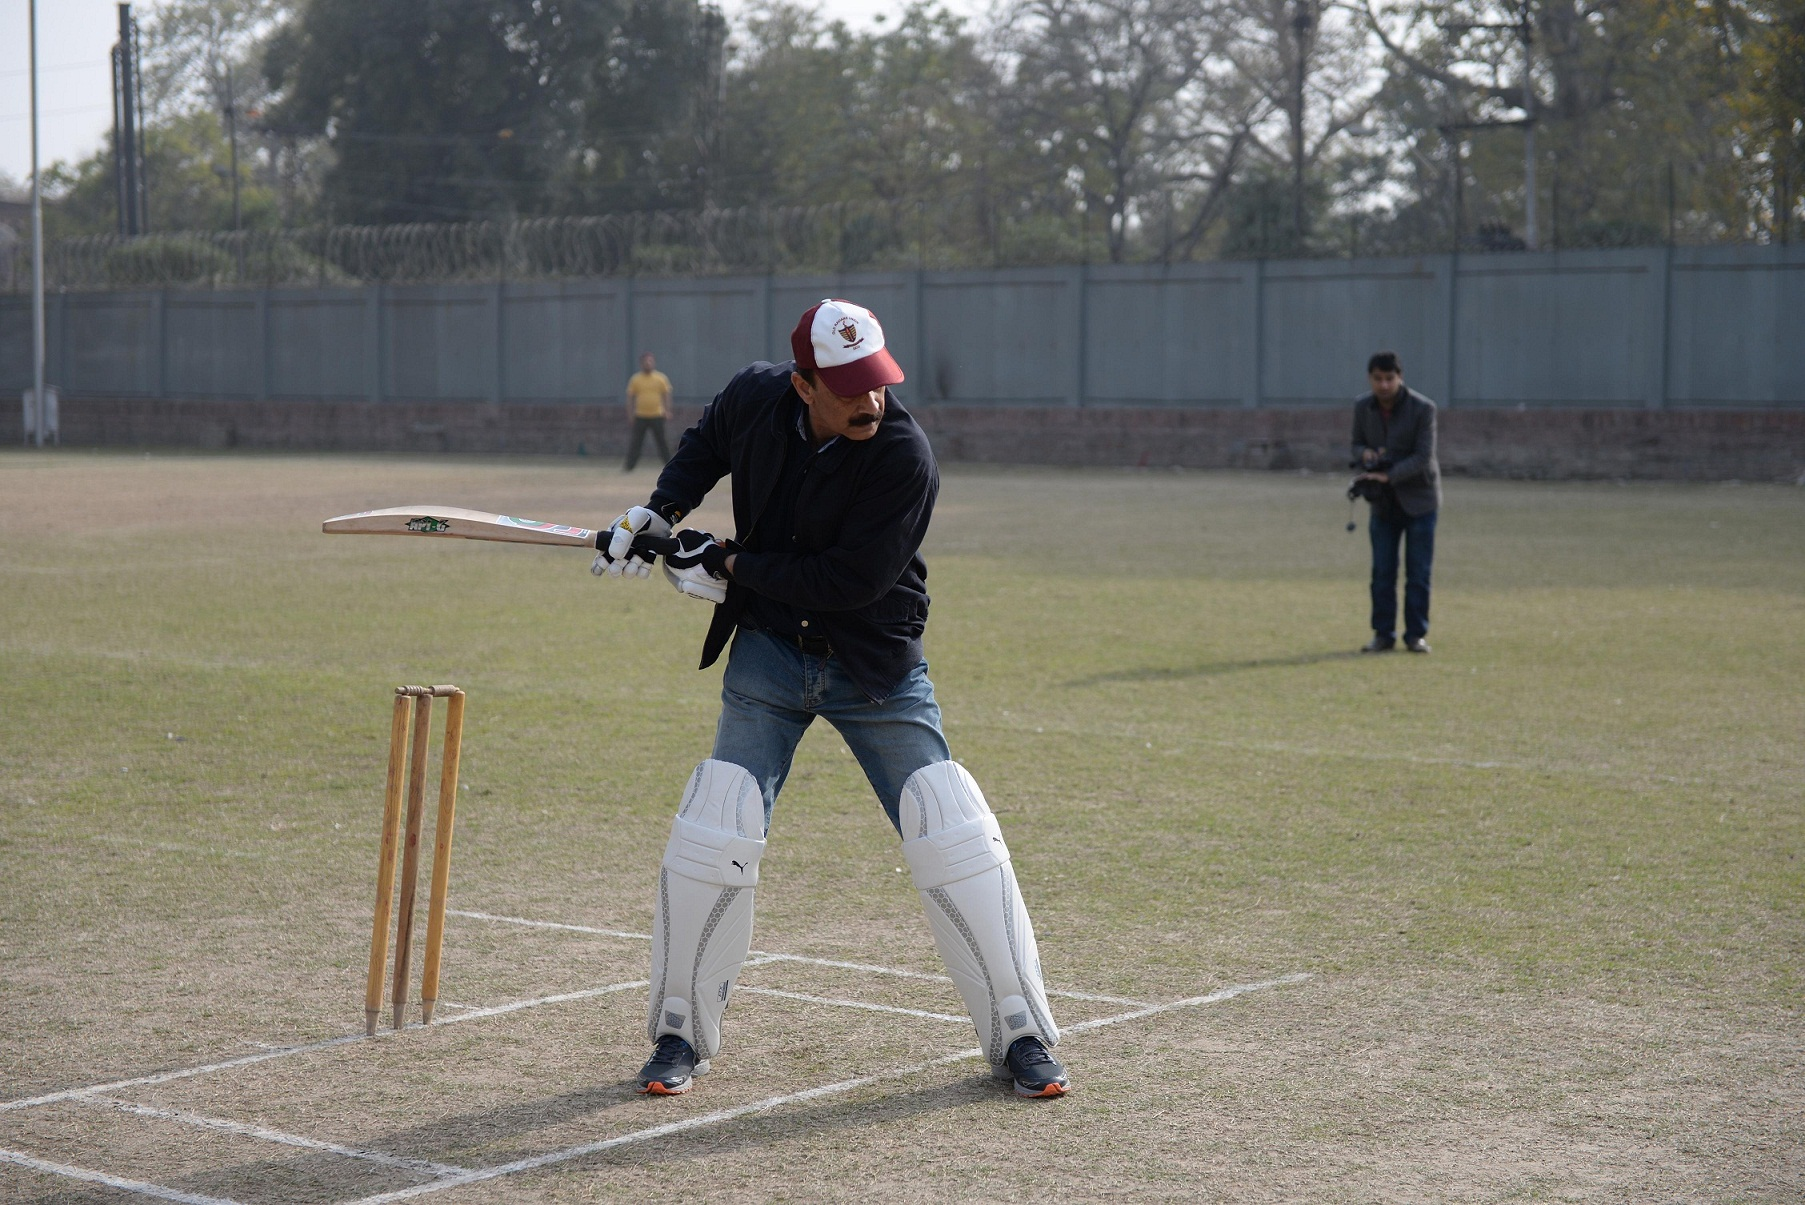 Mr. Lashari on backfoot